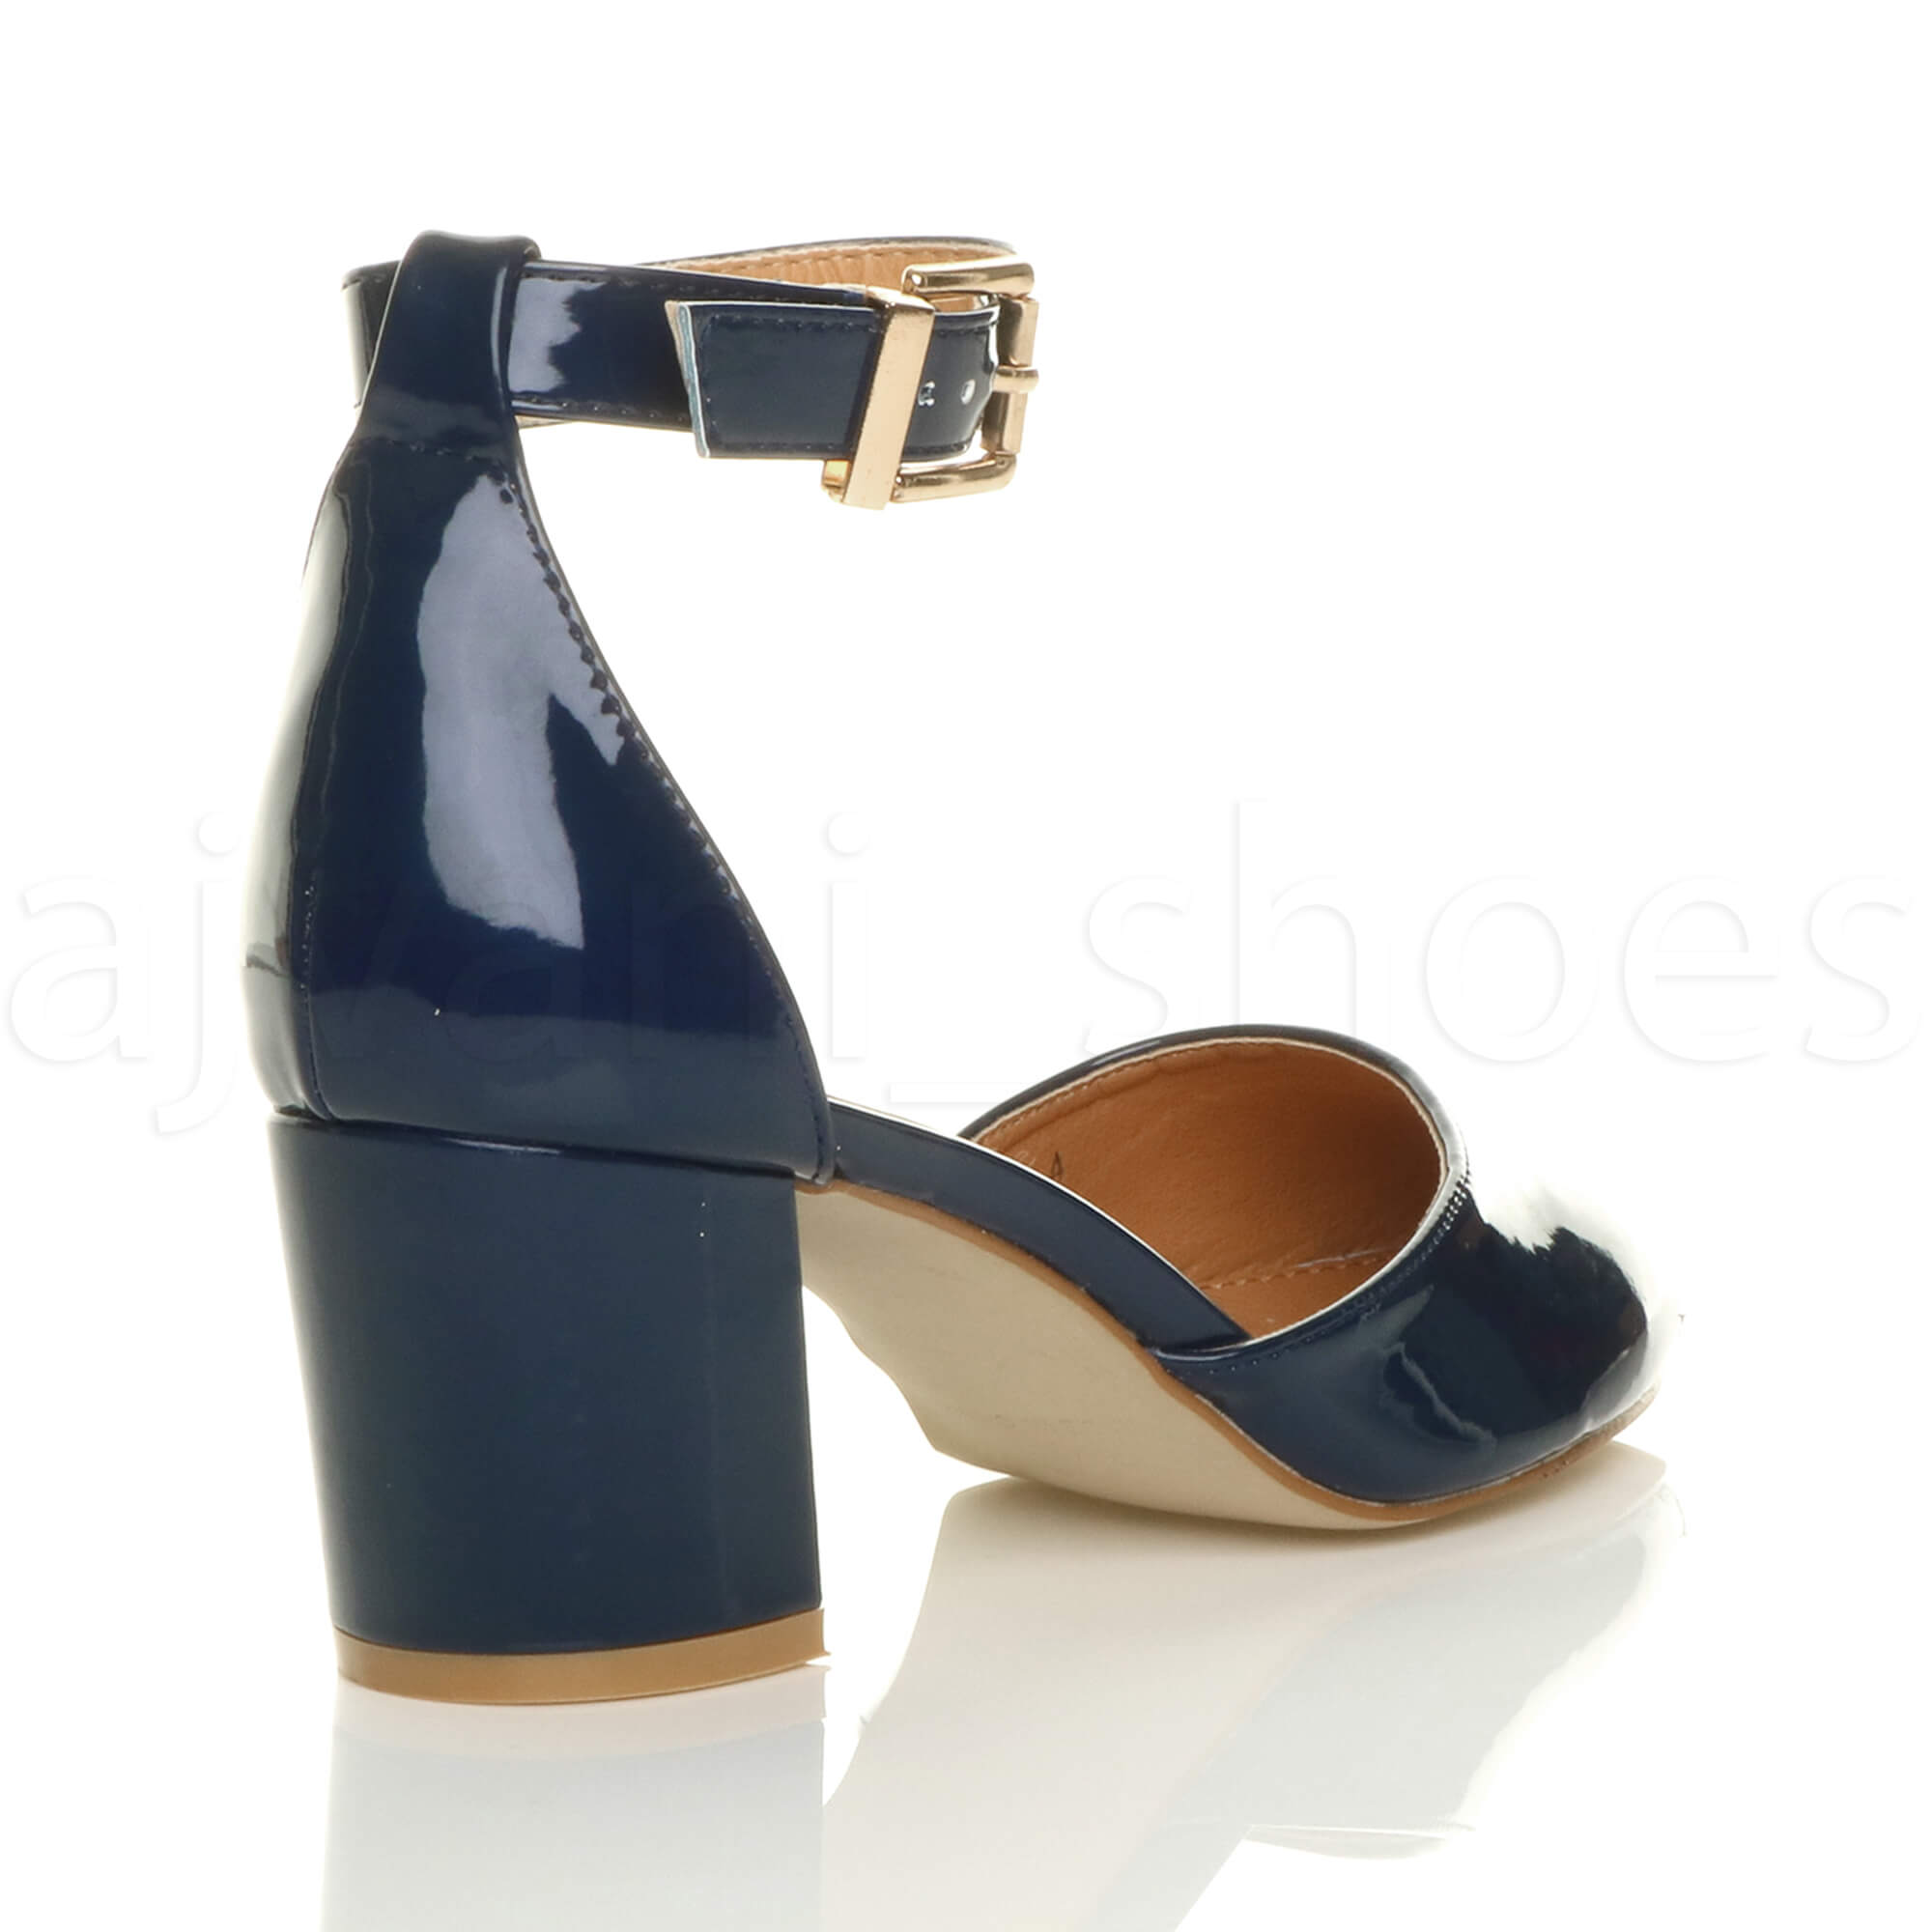 WOMENS-LADIES-LOW-MID-BLOCK-HEEL-ANKLE-STRAP-MARY-JANE-COURT-SHOES-SANDALS-SIZE thumbnail 101